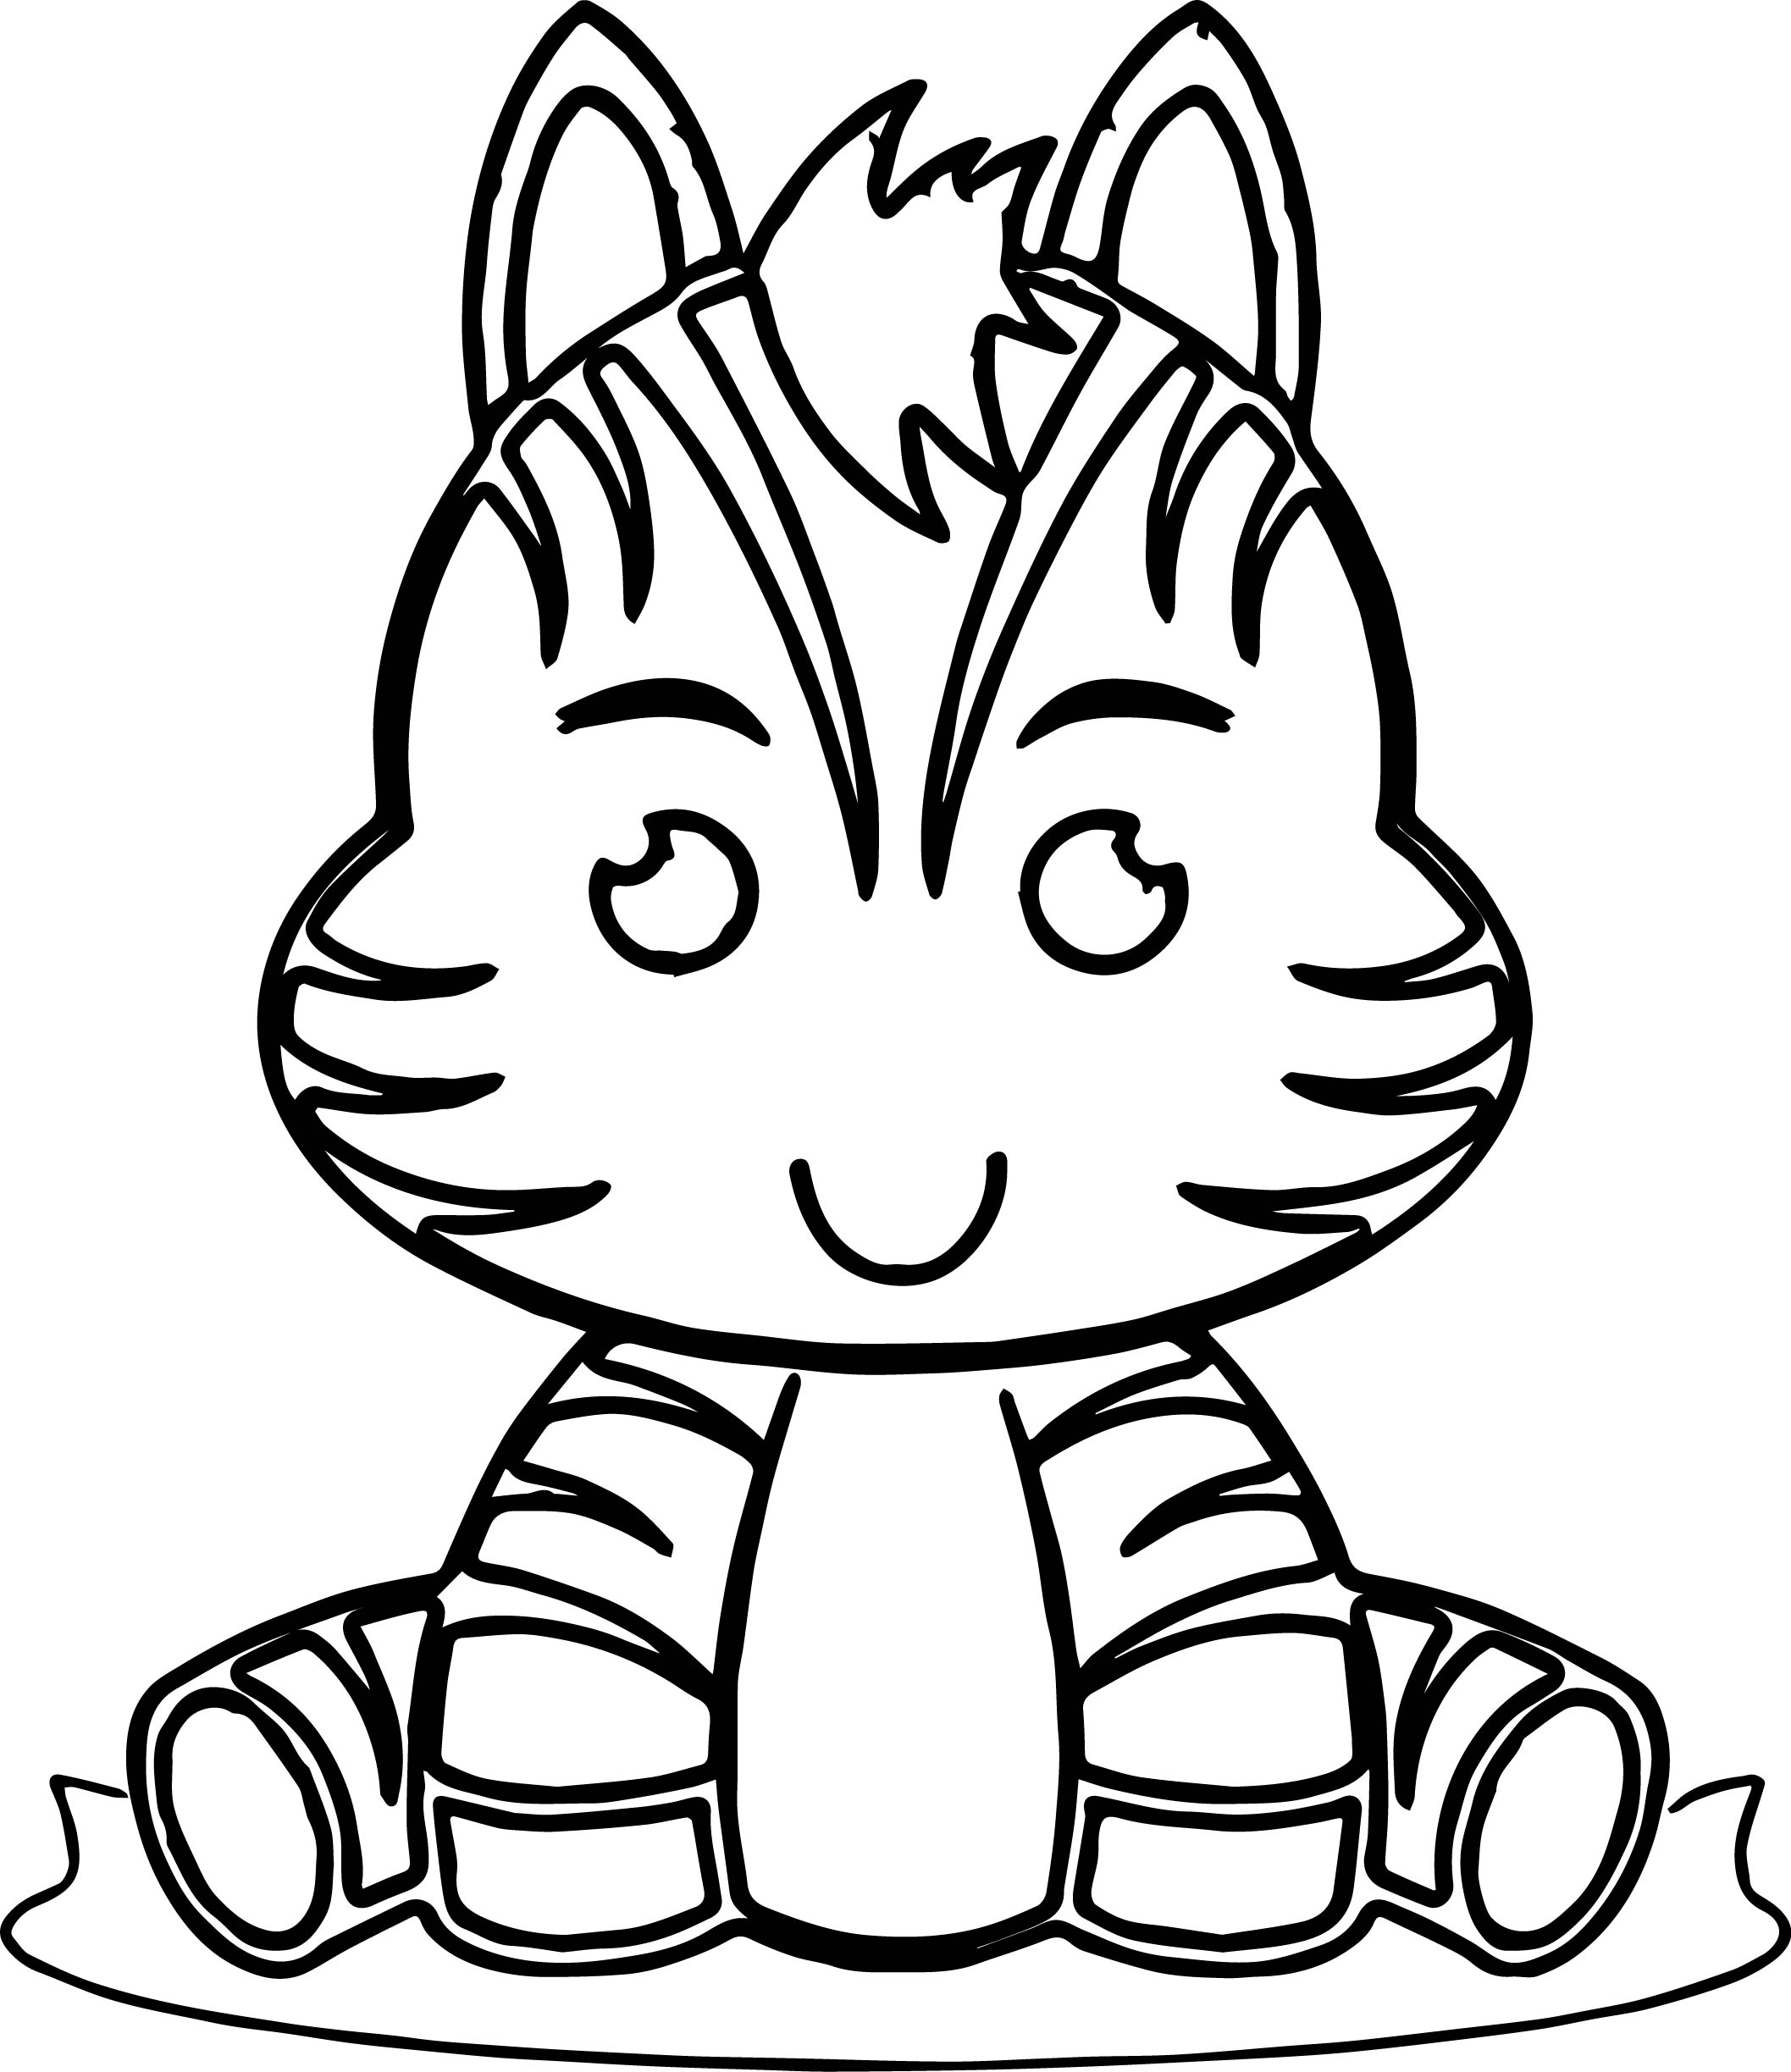 zebra zoo wild animals miss kate cute coloring page wecoloringpage